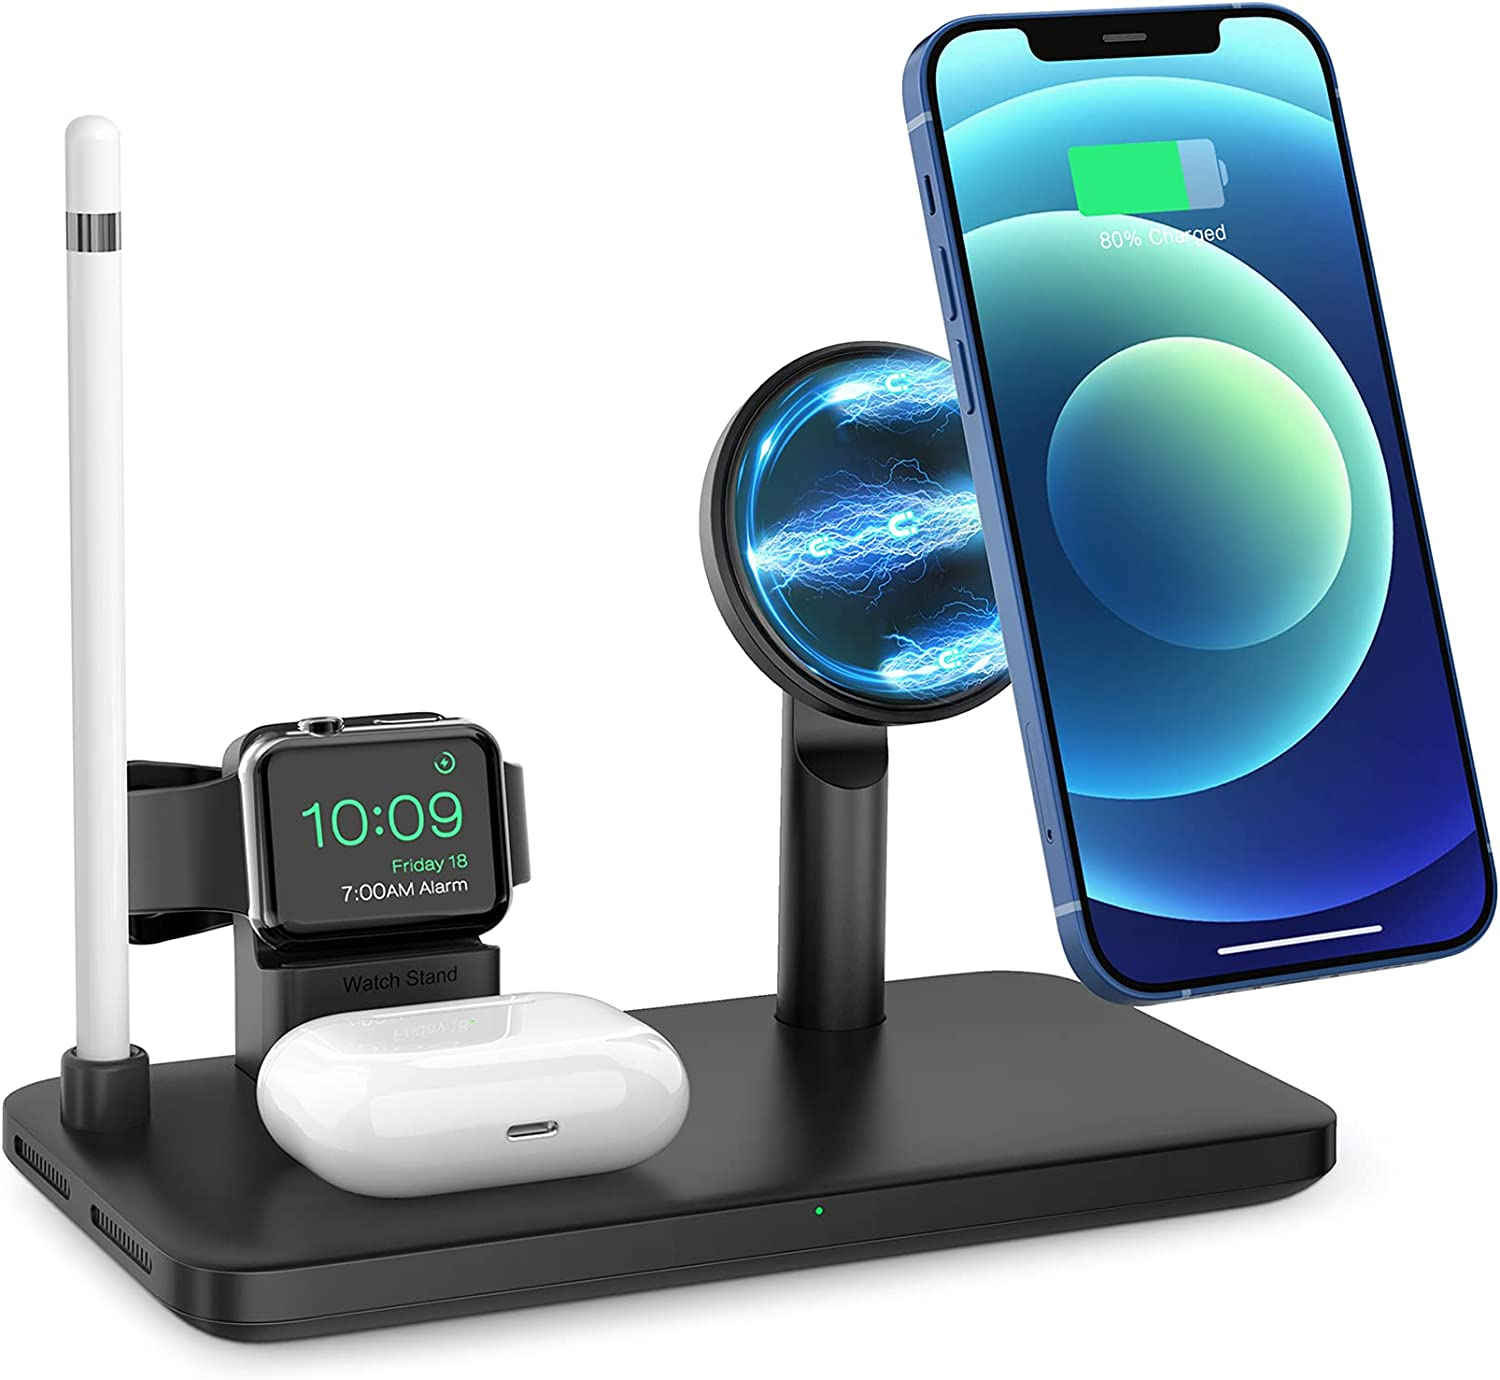 iSeneo Magnetic Wireless Charging Station - 4 in 1 Wireless Charger, Wireless Charging Stand Compatible with iPhone 12/12 Mini/12 Pro/Pro Max, iWatch 2/3/4/5/6, AirPods 2/Pro and Pencil (No Adapter)